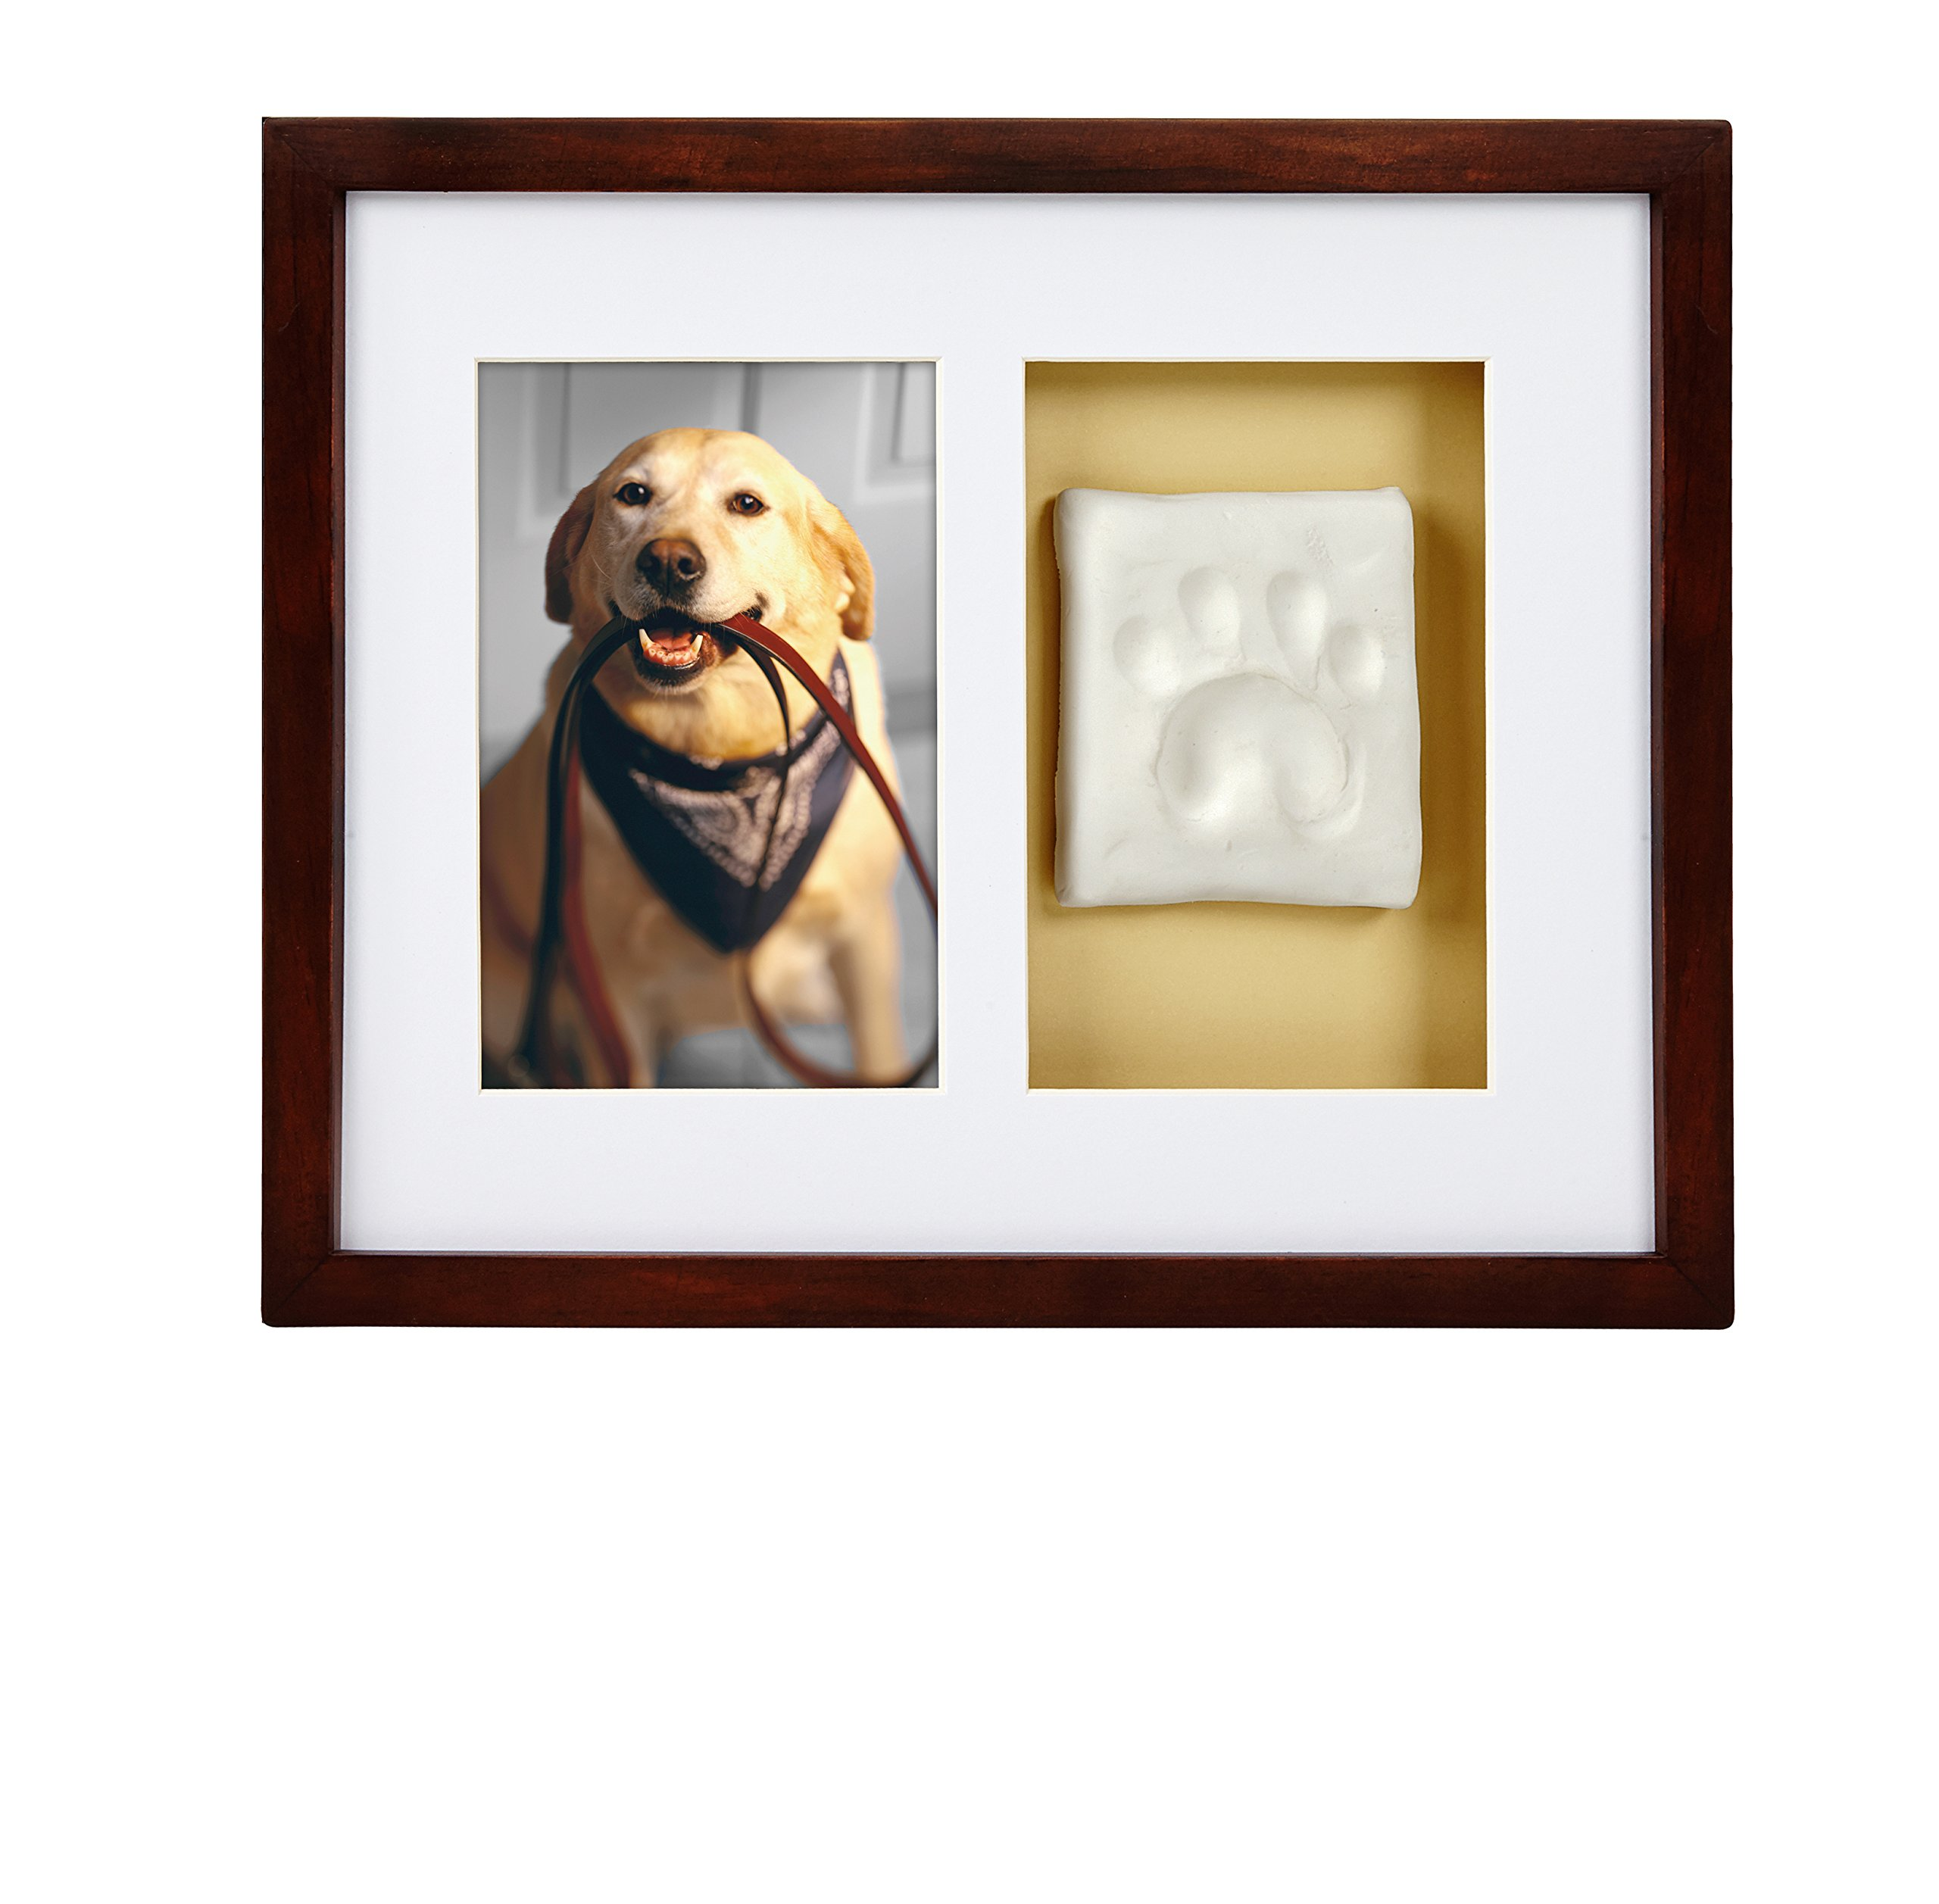 Pearhead Dog Or Cat Paw Prints Pet Wall Frame With Clay Imprint Kit, Perfect Pet Keepsake Espresso by Pearhead